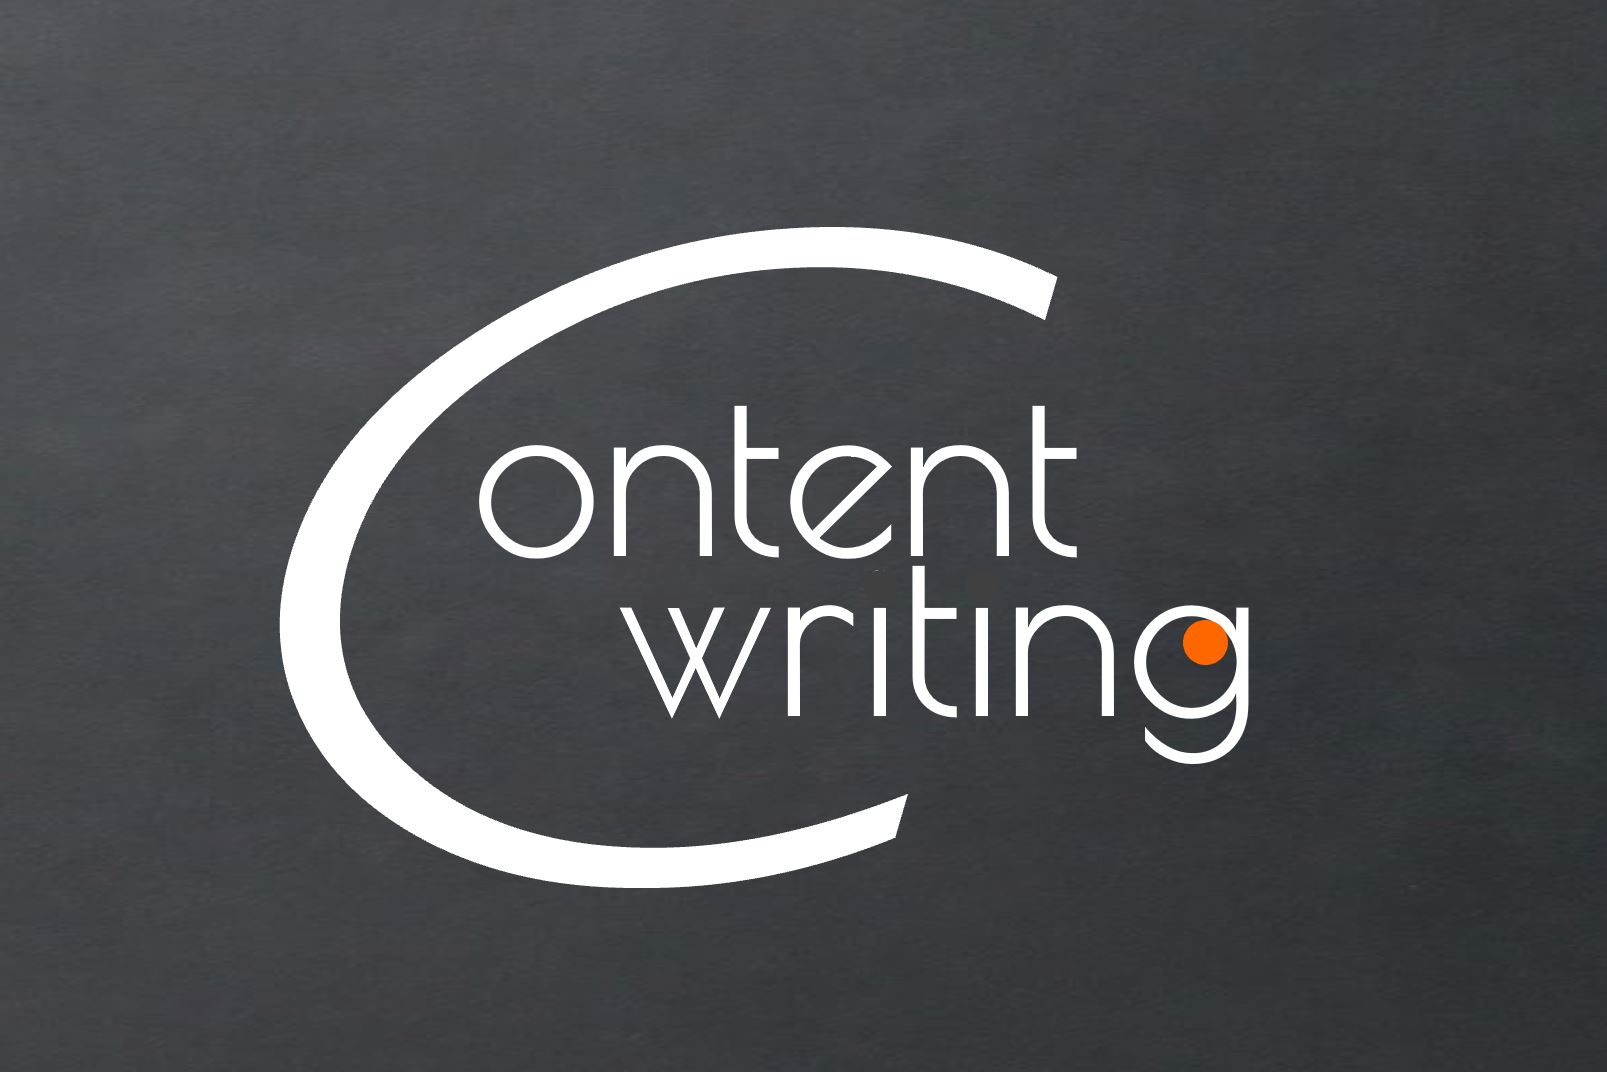 Content Writing and Website Design for small businesses, hardworking digital strategies by Melinda Bak